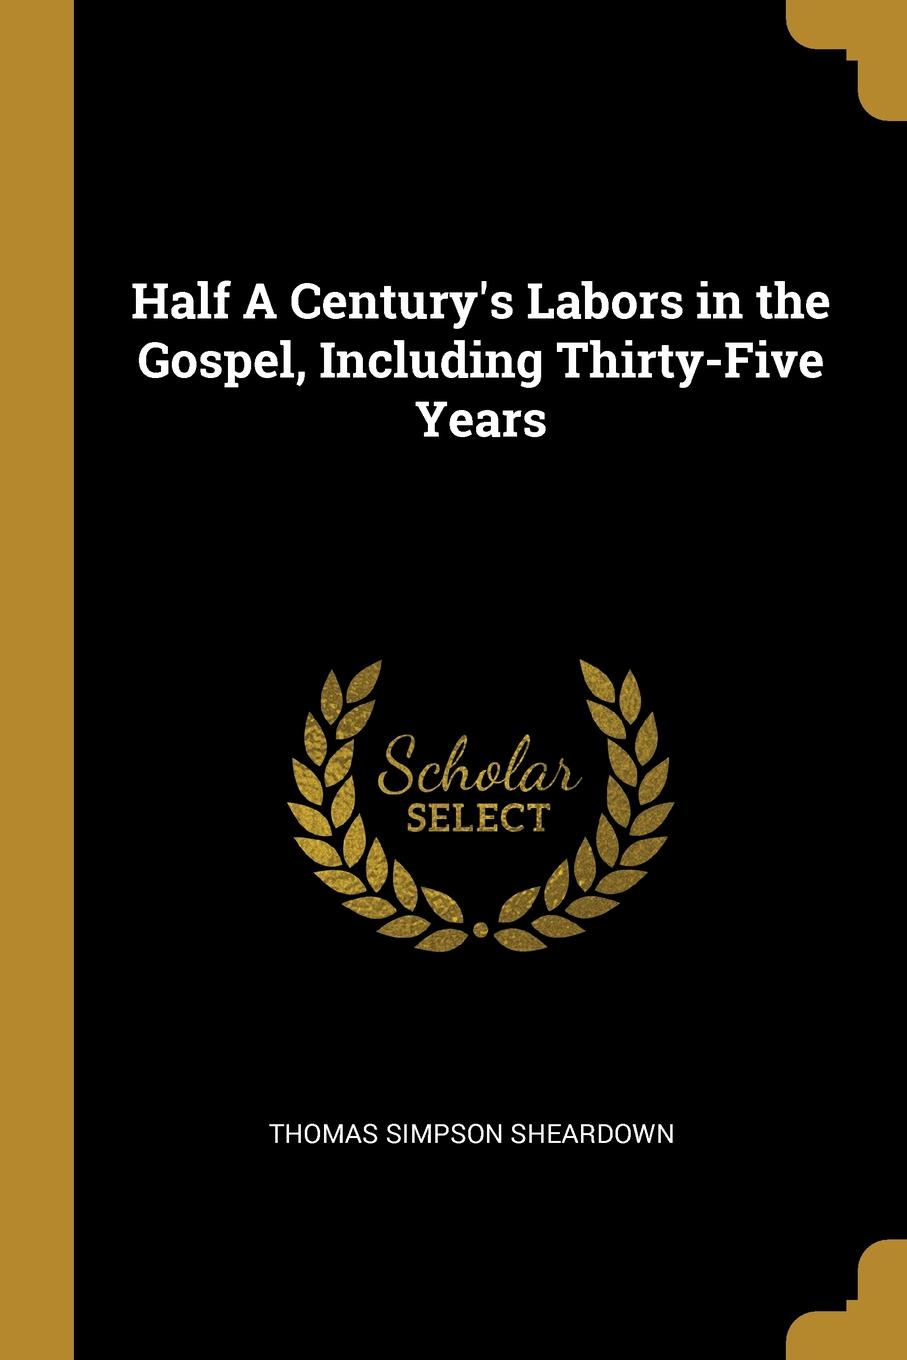 Thomas Simpson Sheardown Half A Century.s Labors in the Gospel, Including Thirty-Five Years